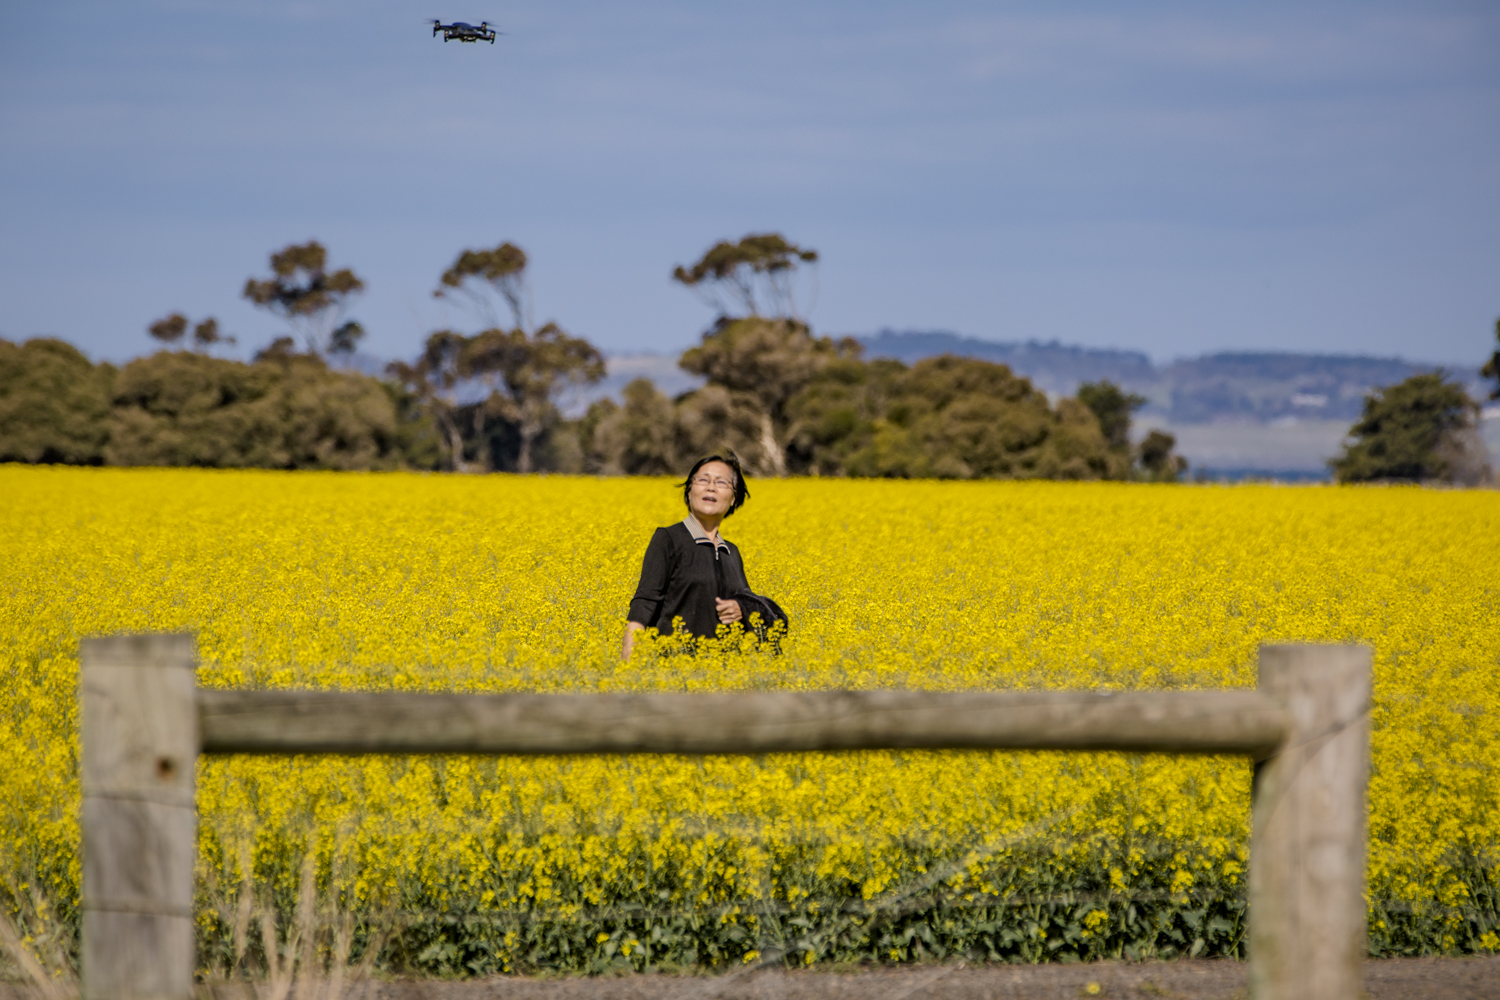 Anyone for a selfie? This lady wanted to take a selfie of herself in the canola fields.